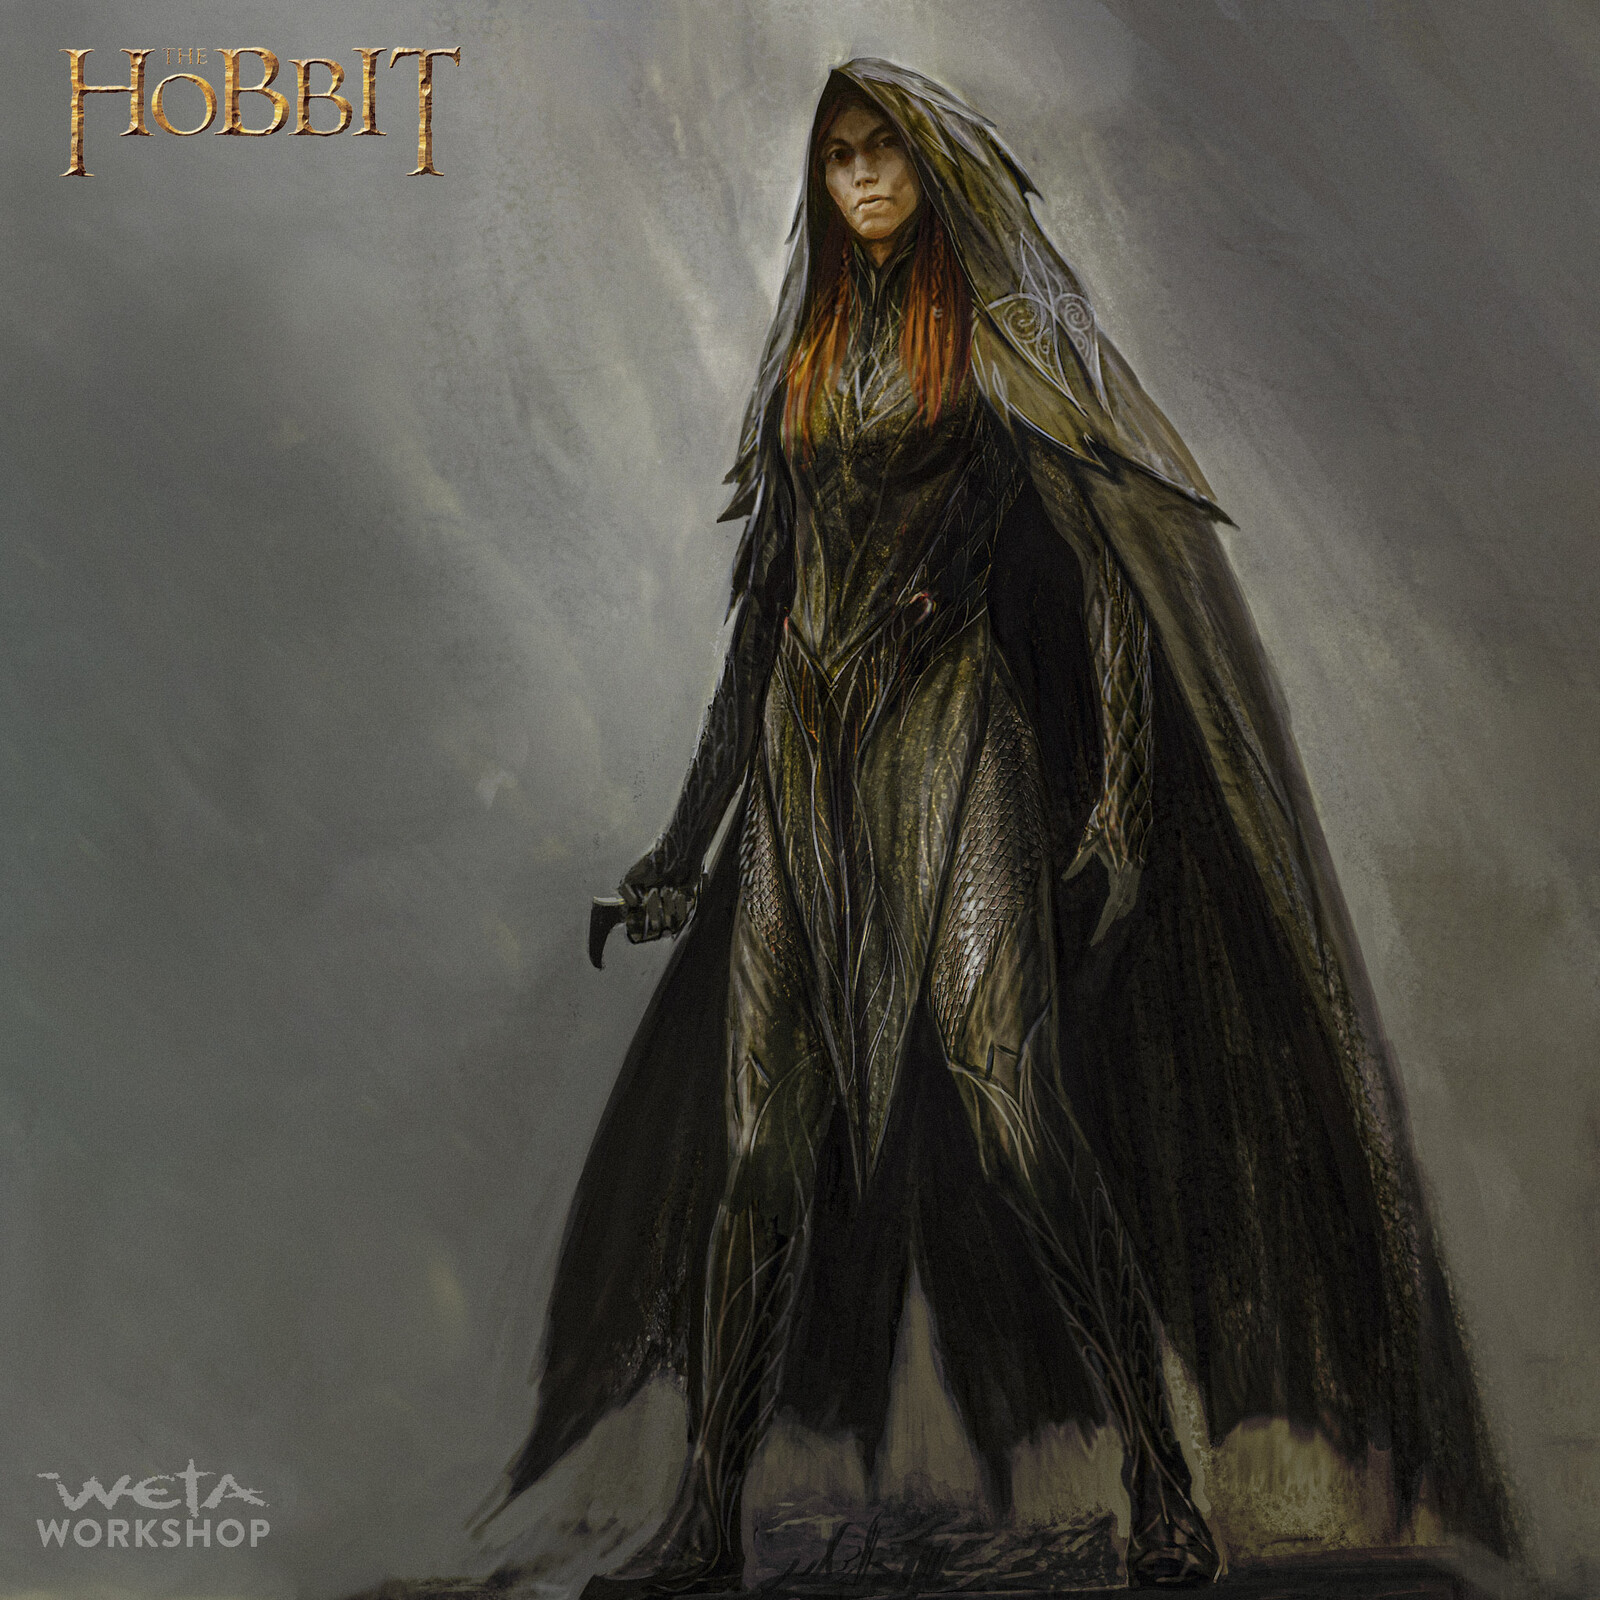 The Hobbit: Tauriel